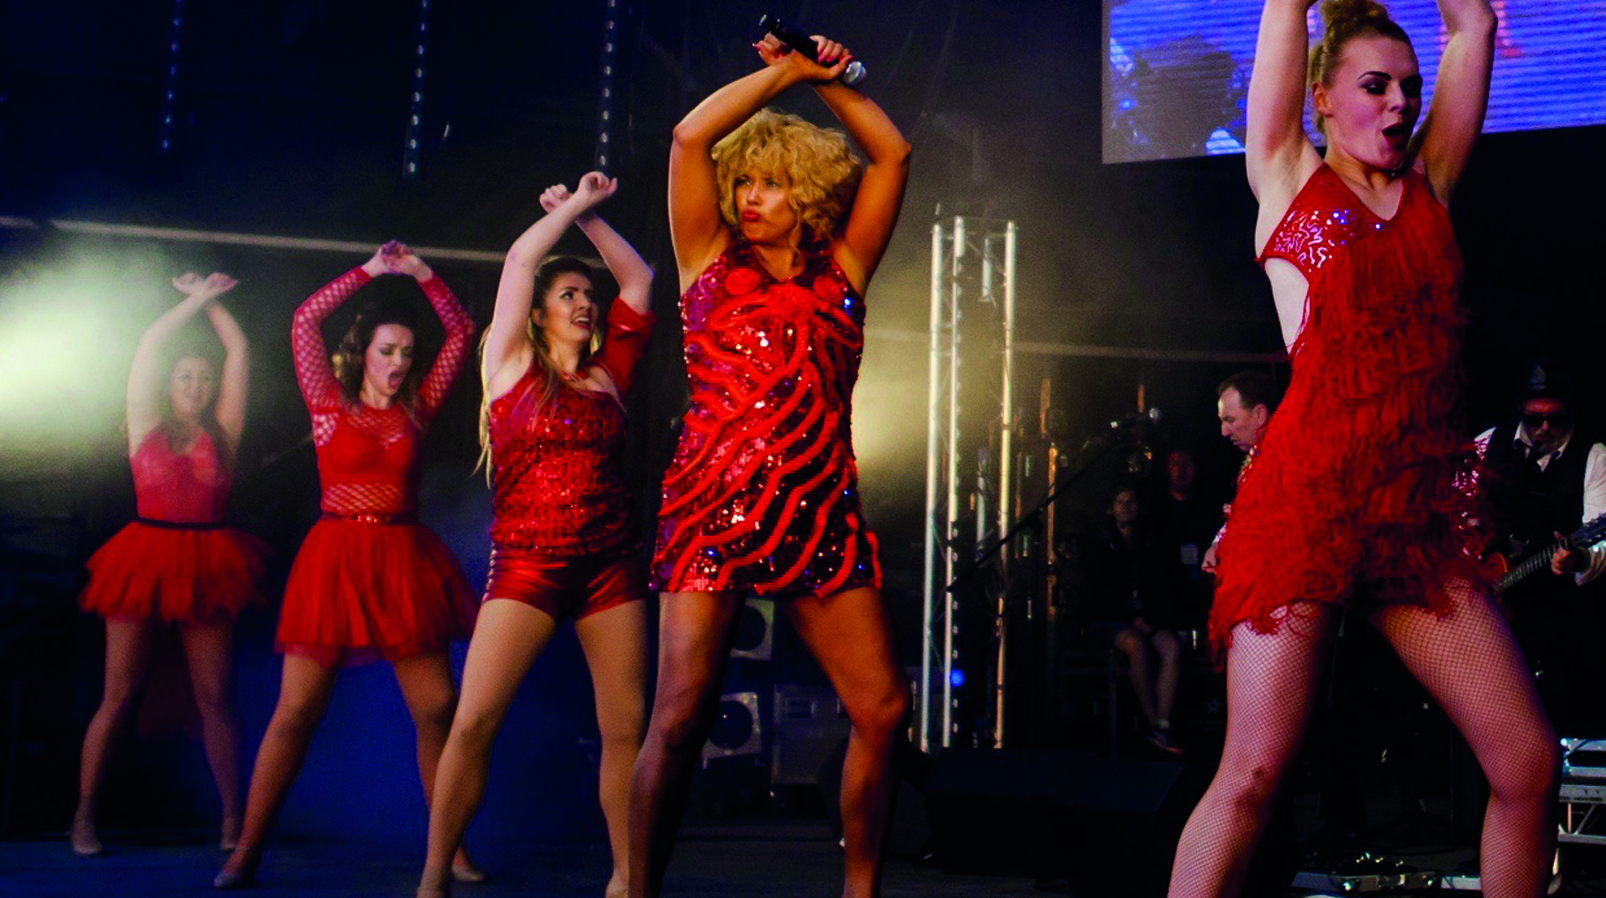 Justine is 'simply the best' as Tina Turner